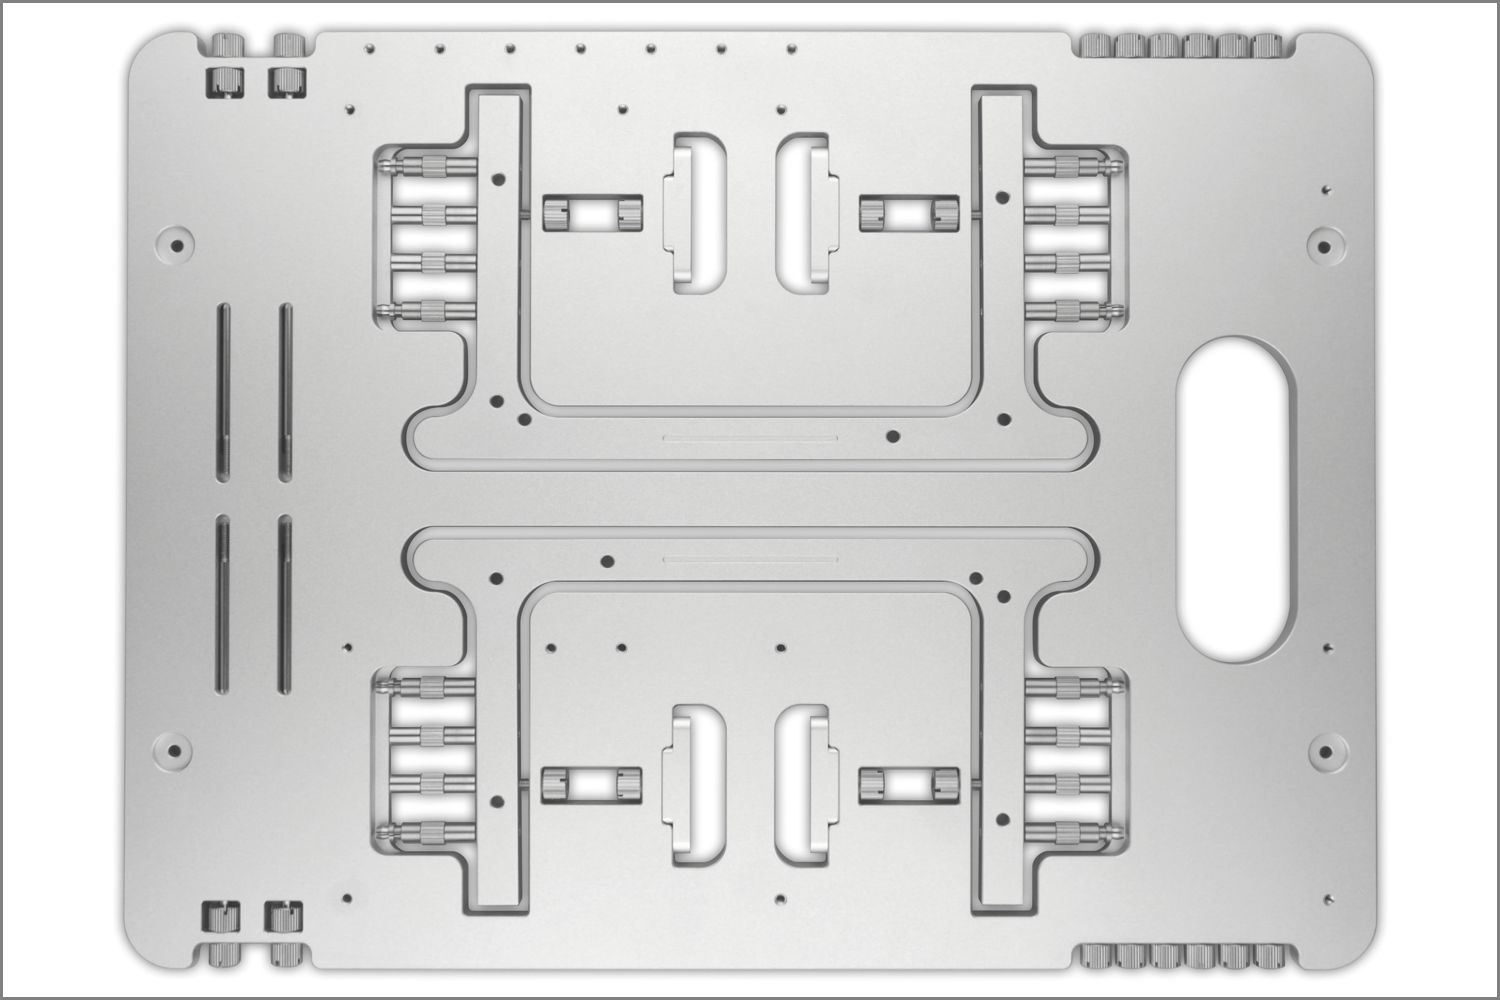 Streacom St Bc1 Aluminium Open Benchtable Table Fan Diagram Integrated Mounting Brackets Support System Fans And Radiators In A Variety Of Configurations